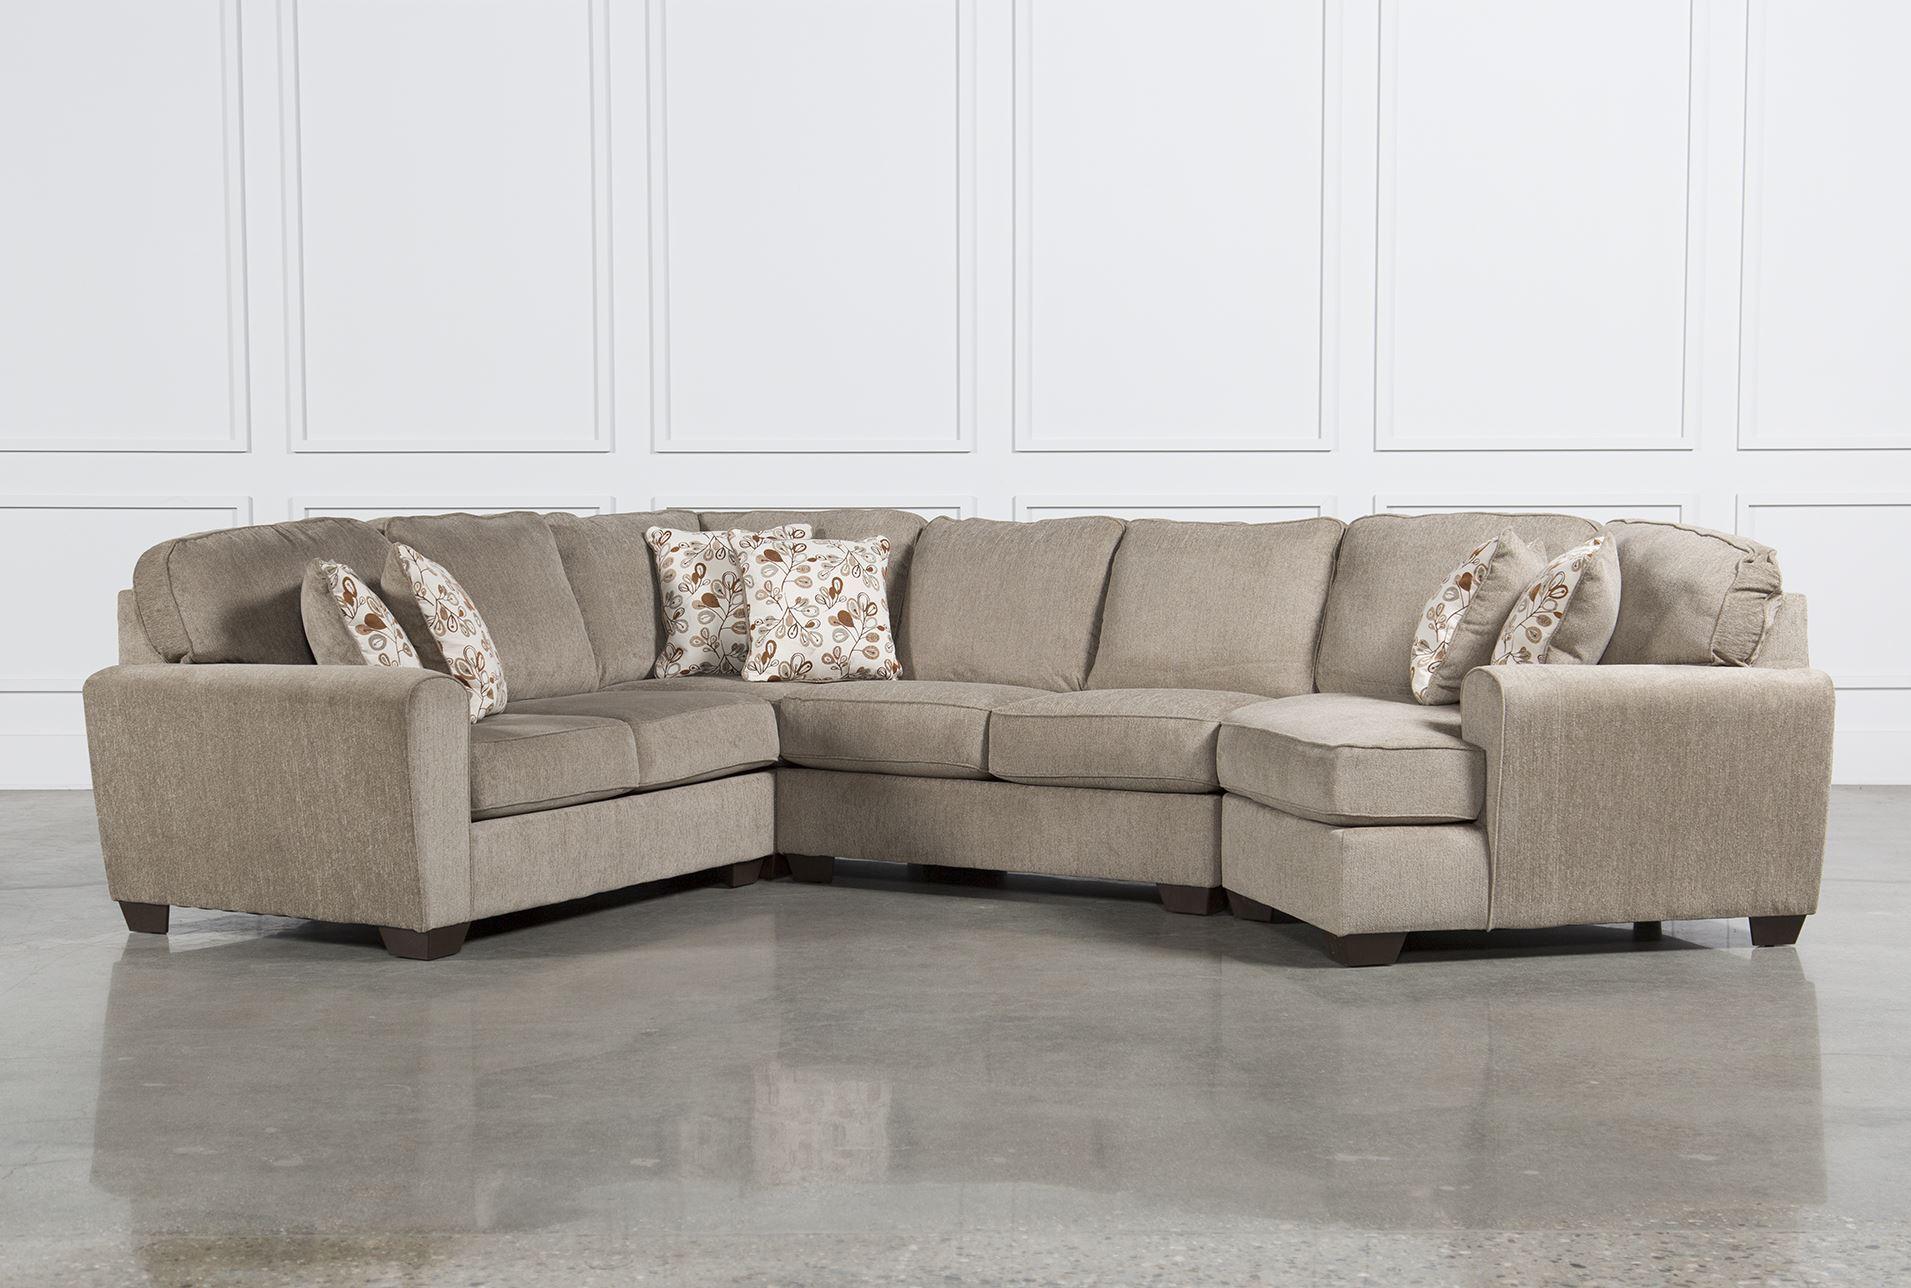 Fancy 4 Piece Sectional Sofa 41 In Contemporary Sofa Inspiration with 4 Piece Sectional Sofa